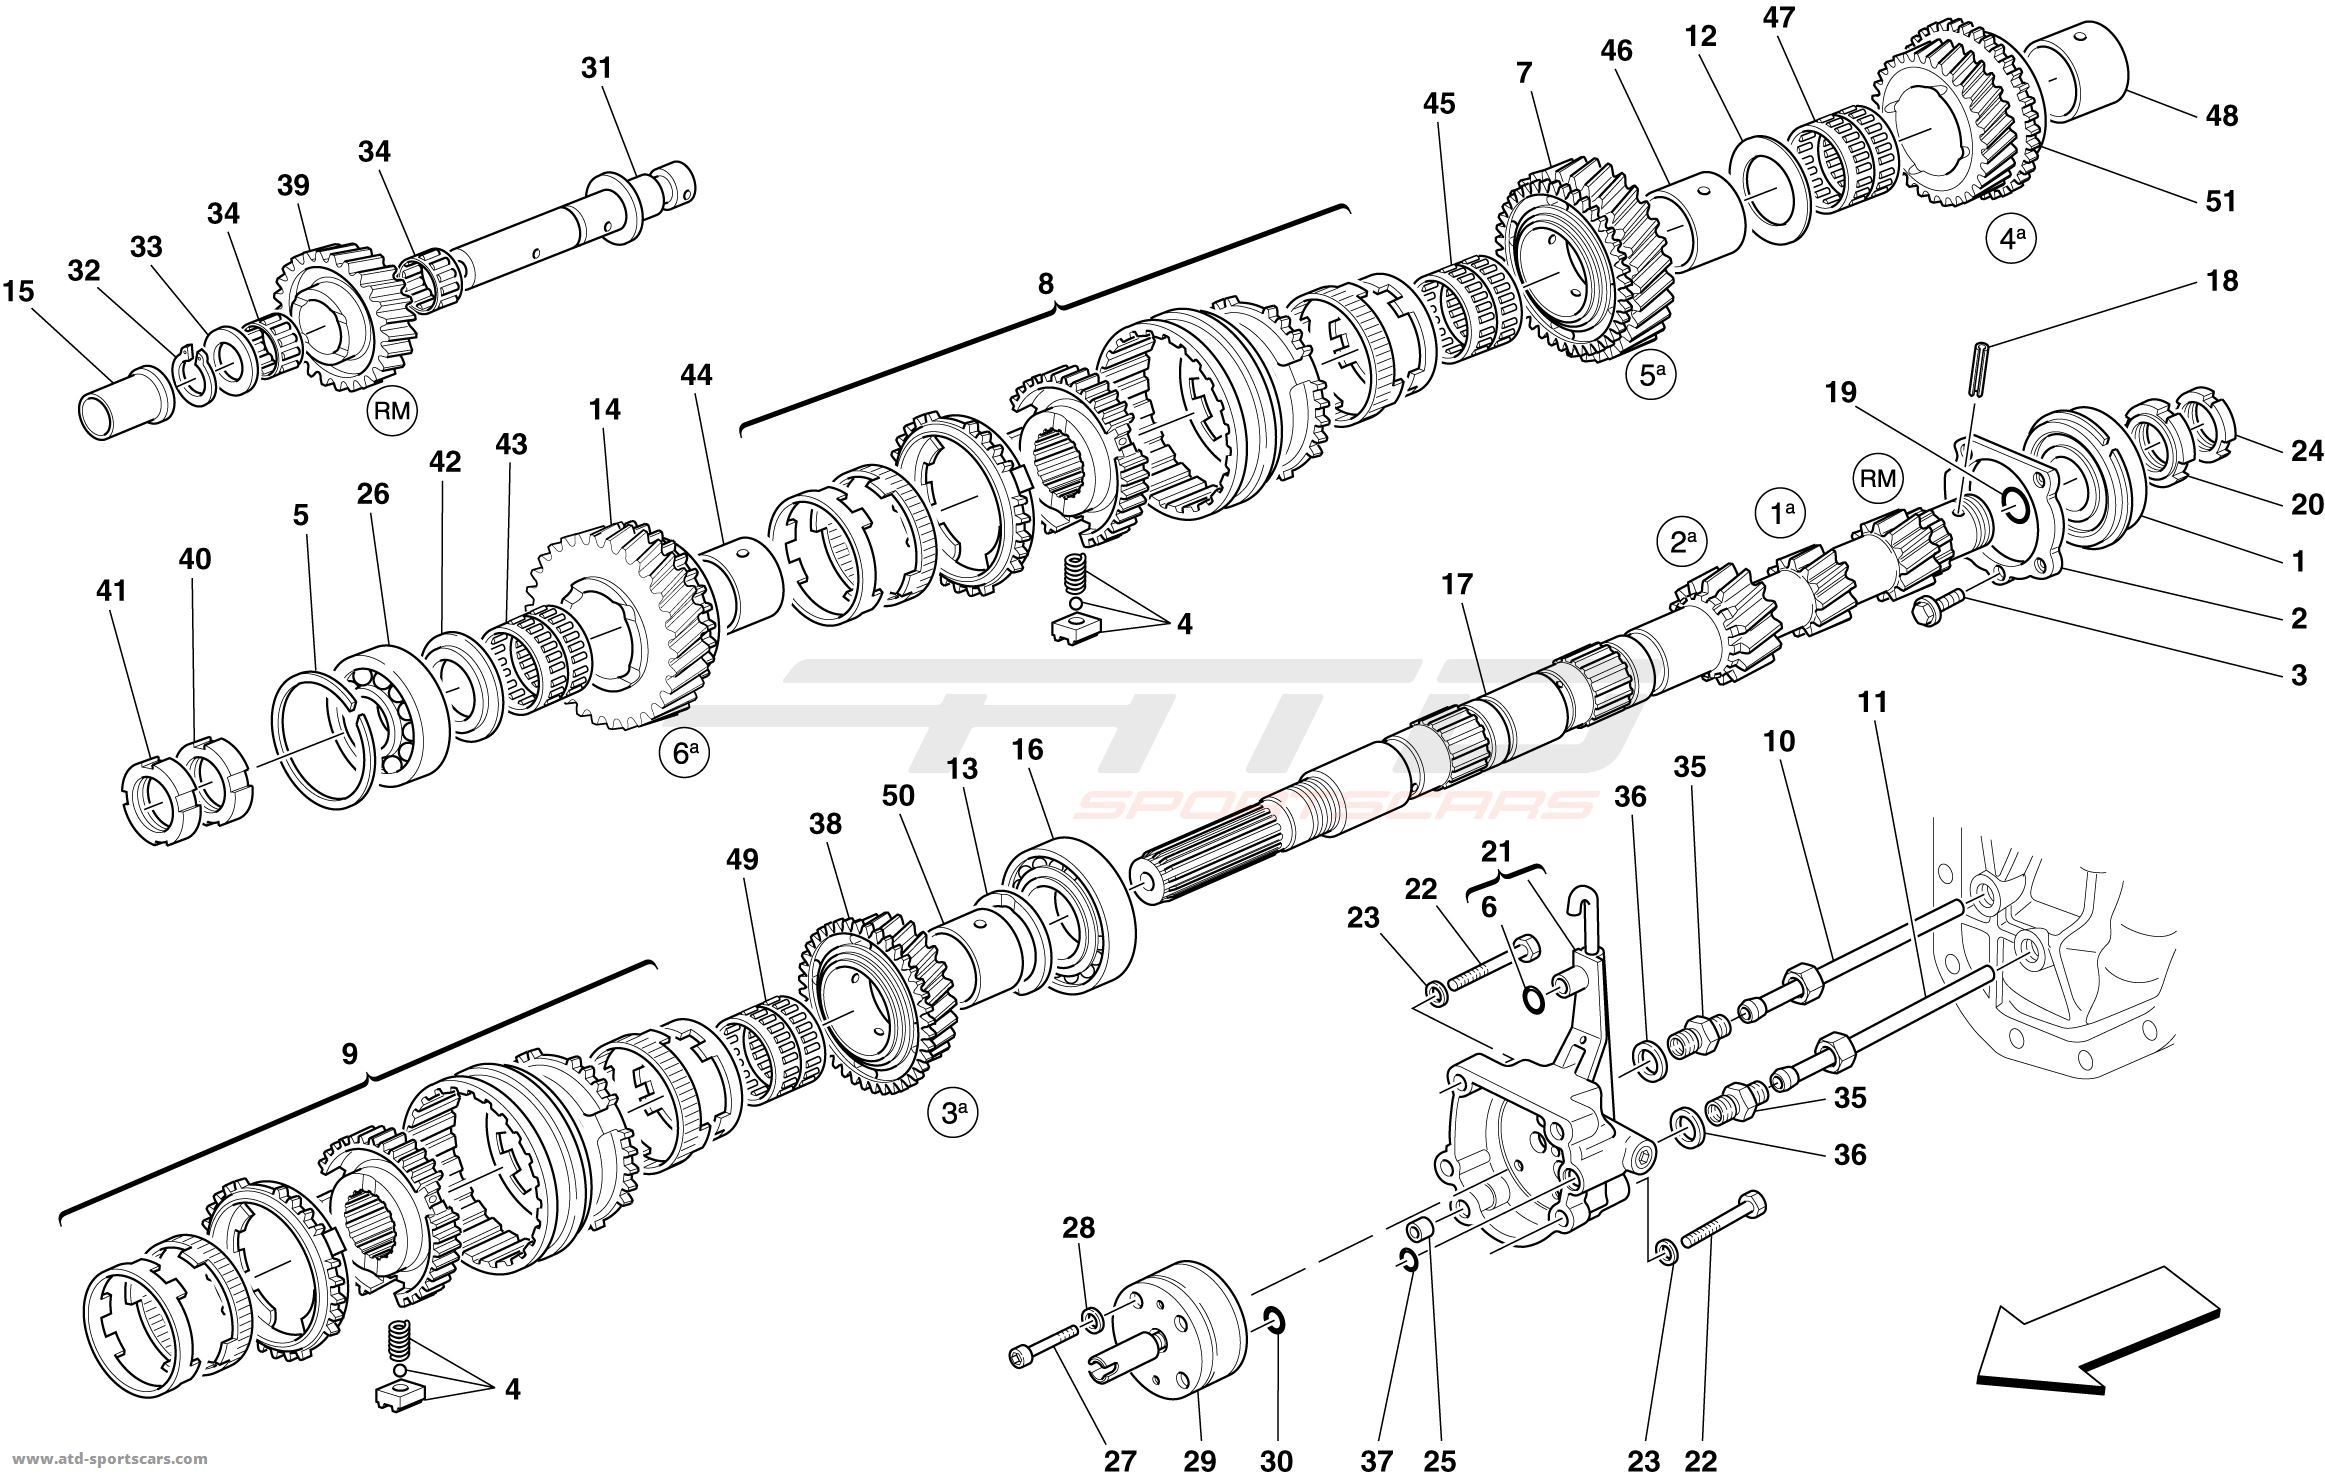 Ferrari 599 Gto Primary Gearbox Shaft Gears And Gearbox Oil Pump